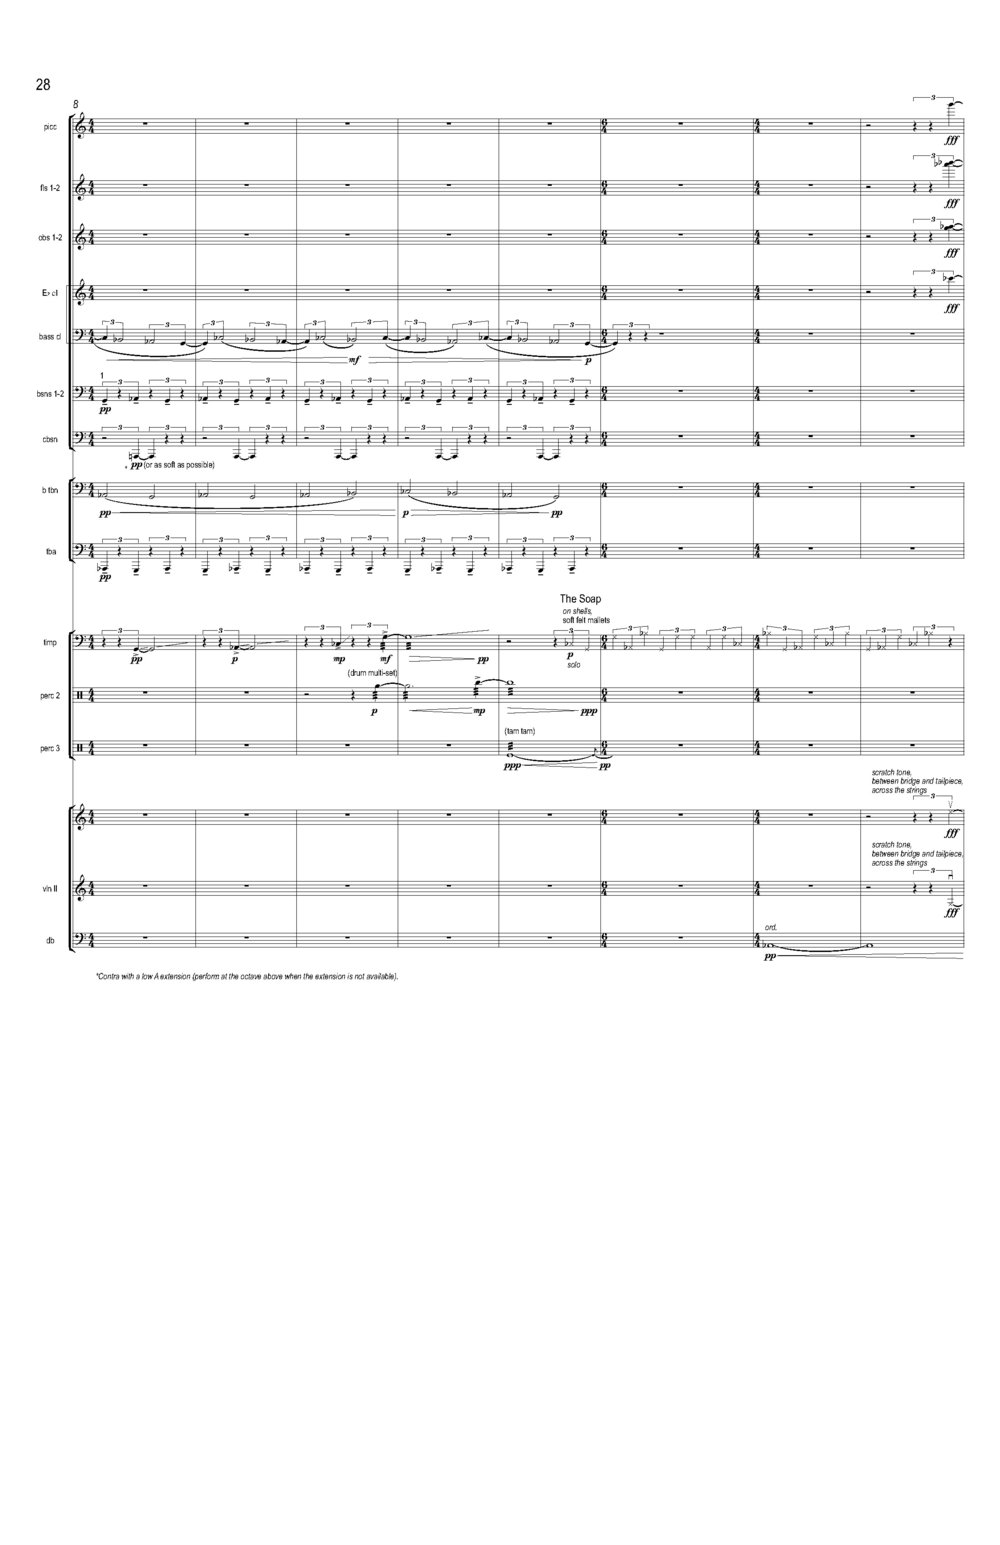 Ciach_Collective Uncommon REVISED_Full Score (Feb 2017)_Seite_34.jpg